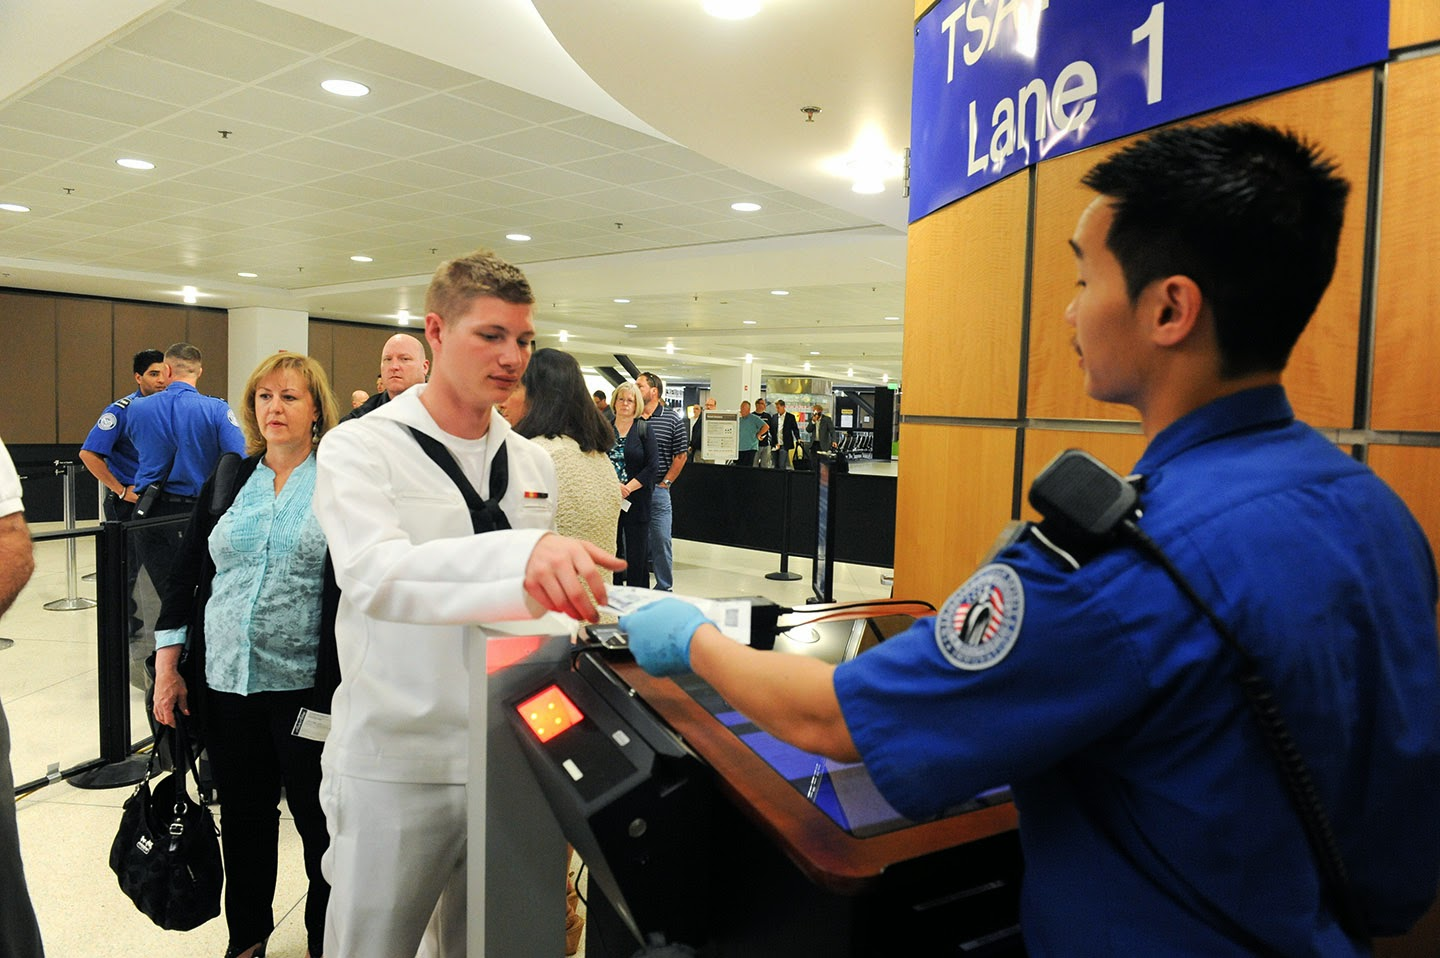 Sailor presenting boarding pass.